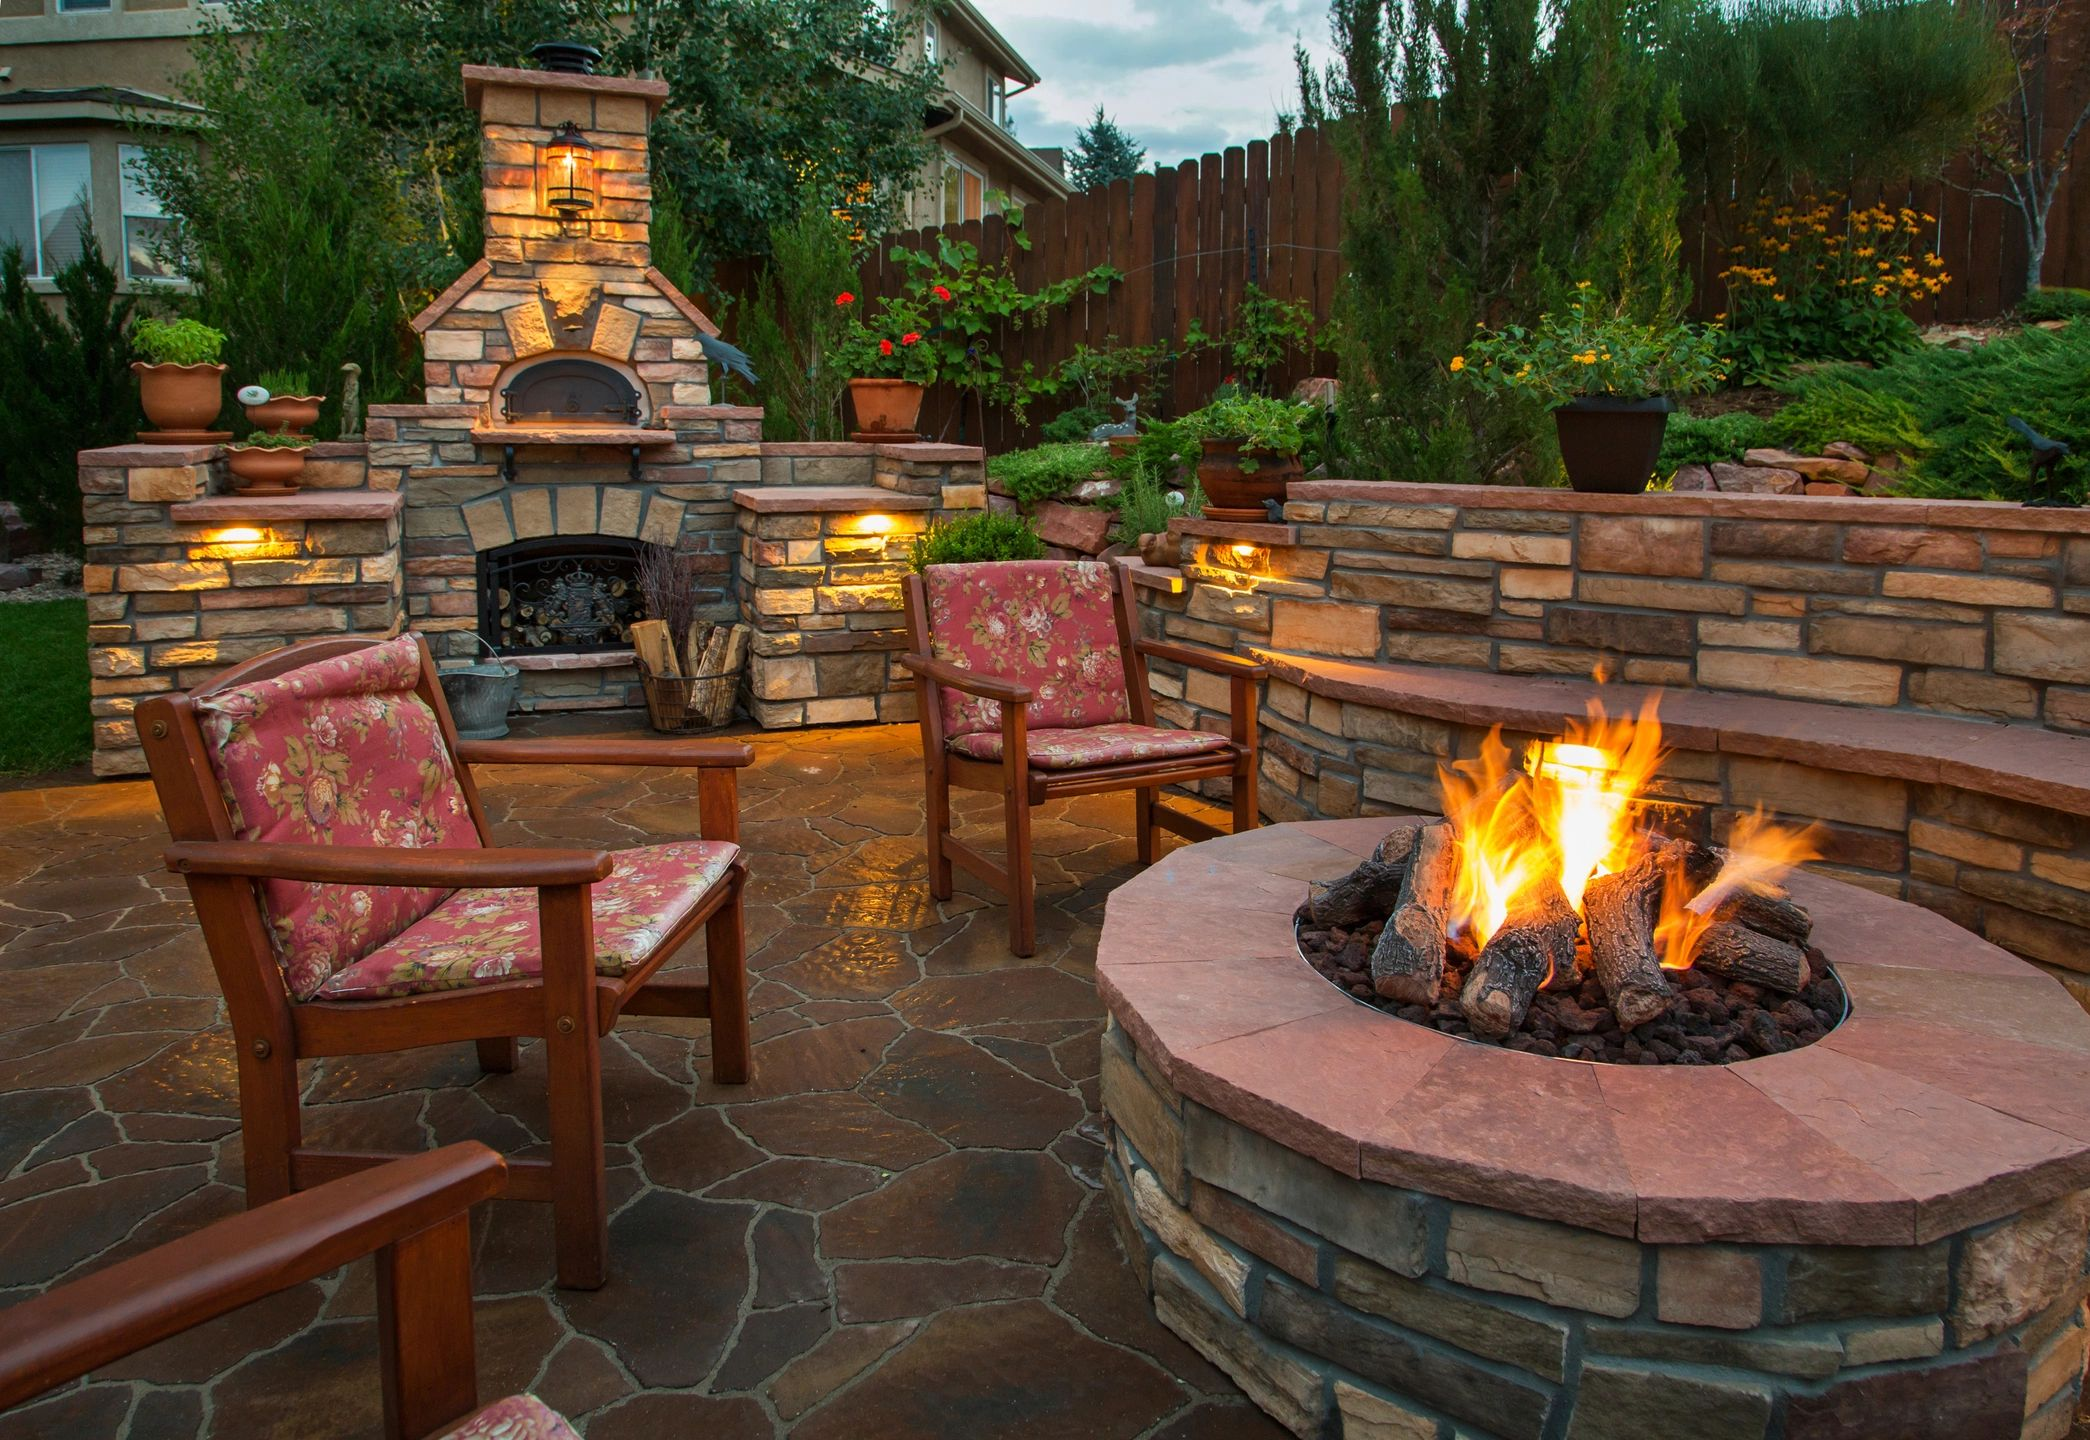 Fire pit and barbecue grill